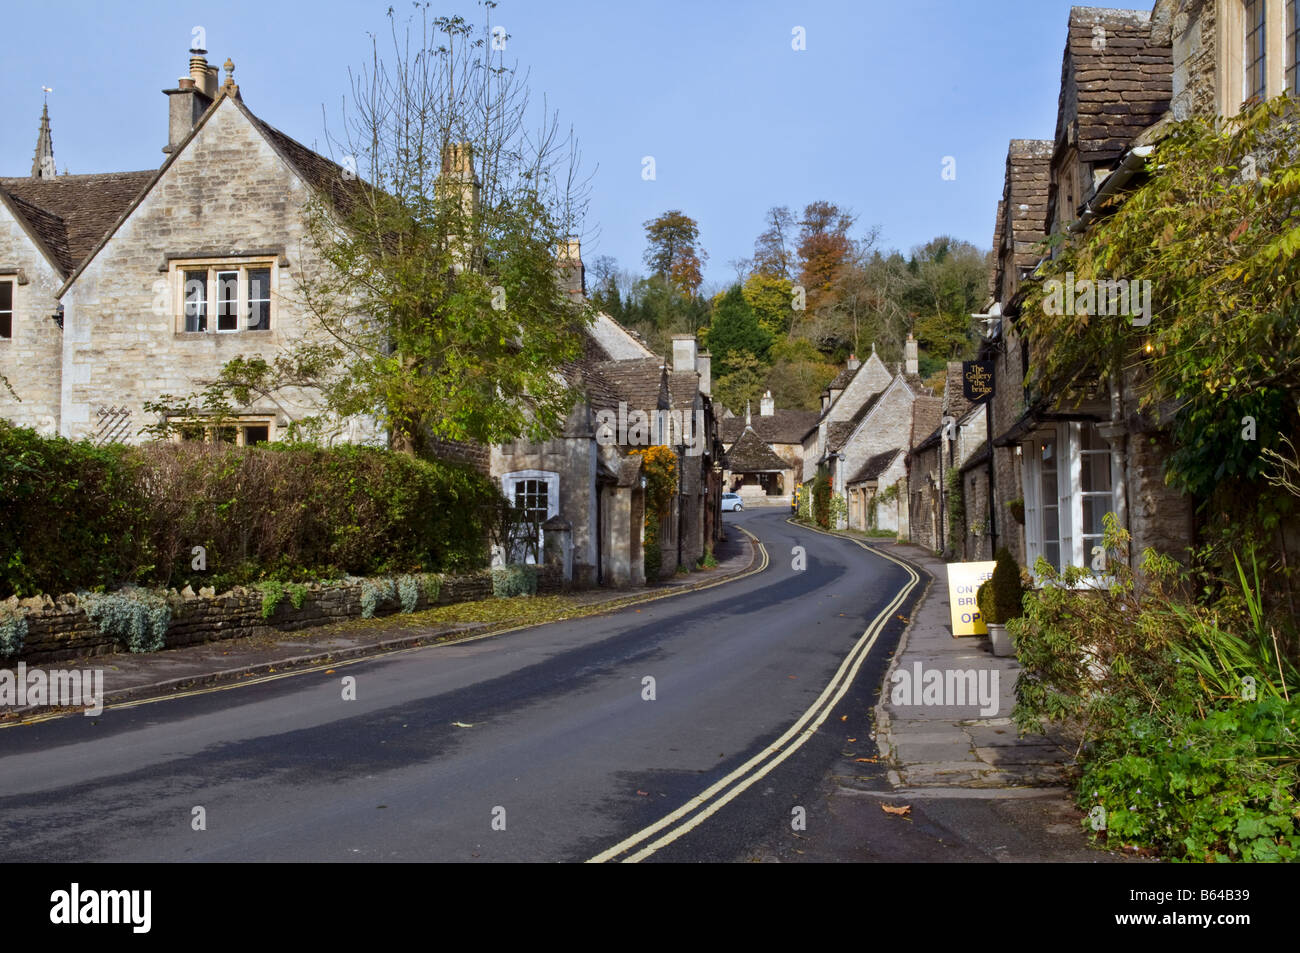 Picturesque village of Castle Combe in the Cotswolds, England taken on a fine autumn day, showing the main street. - Stock Image